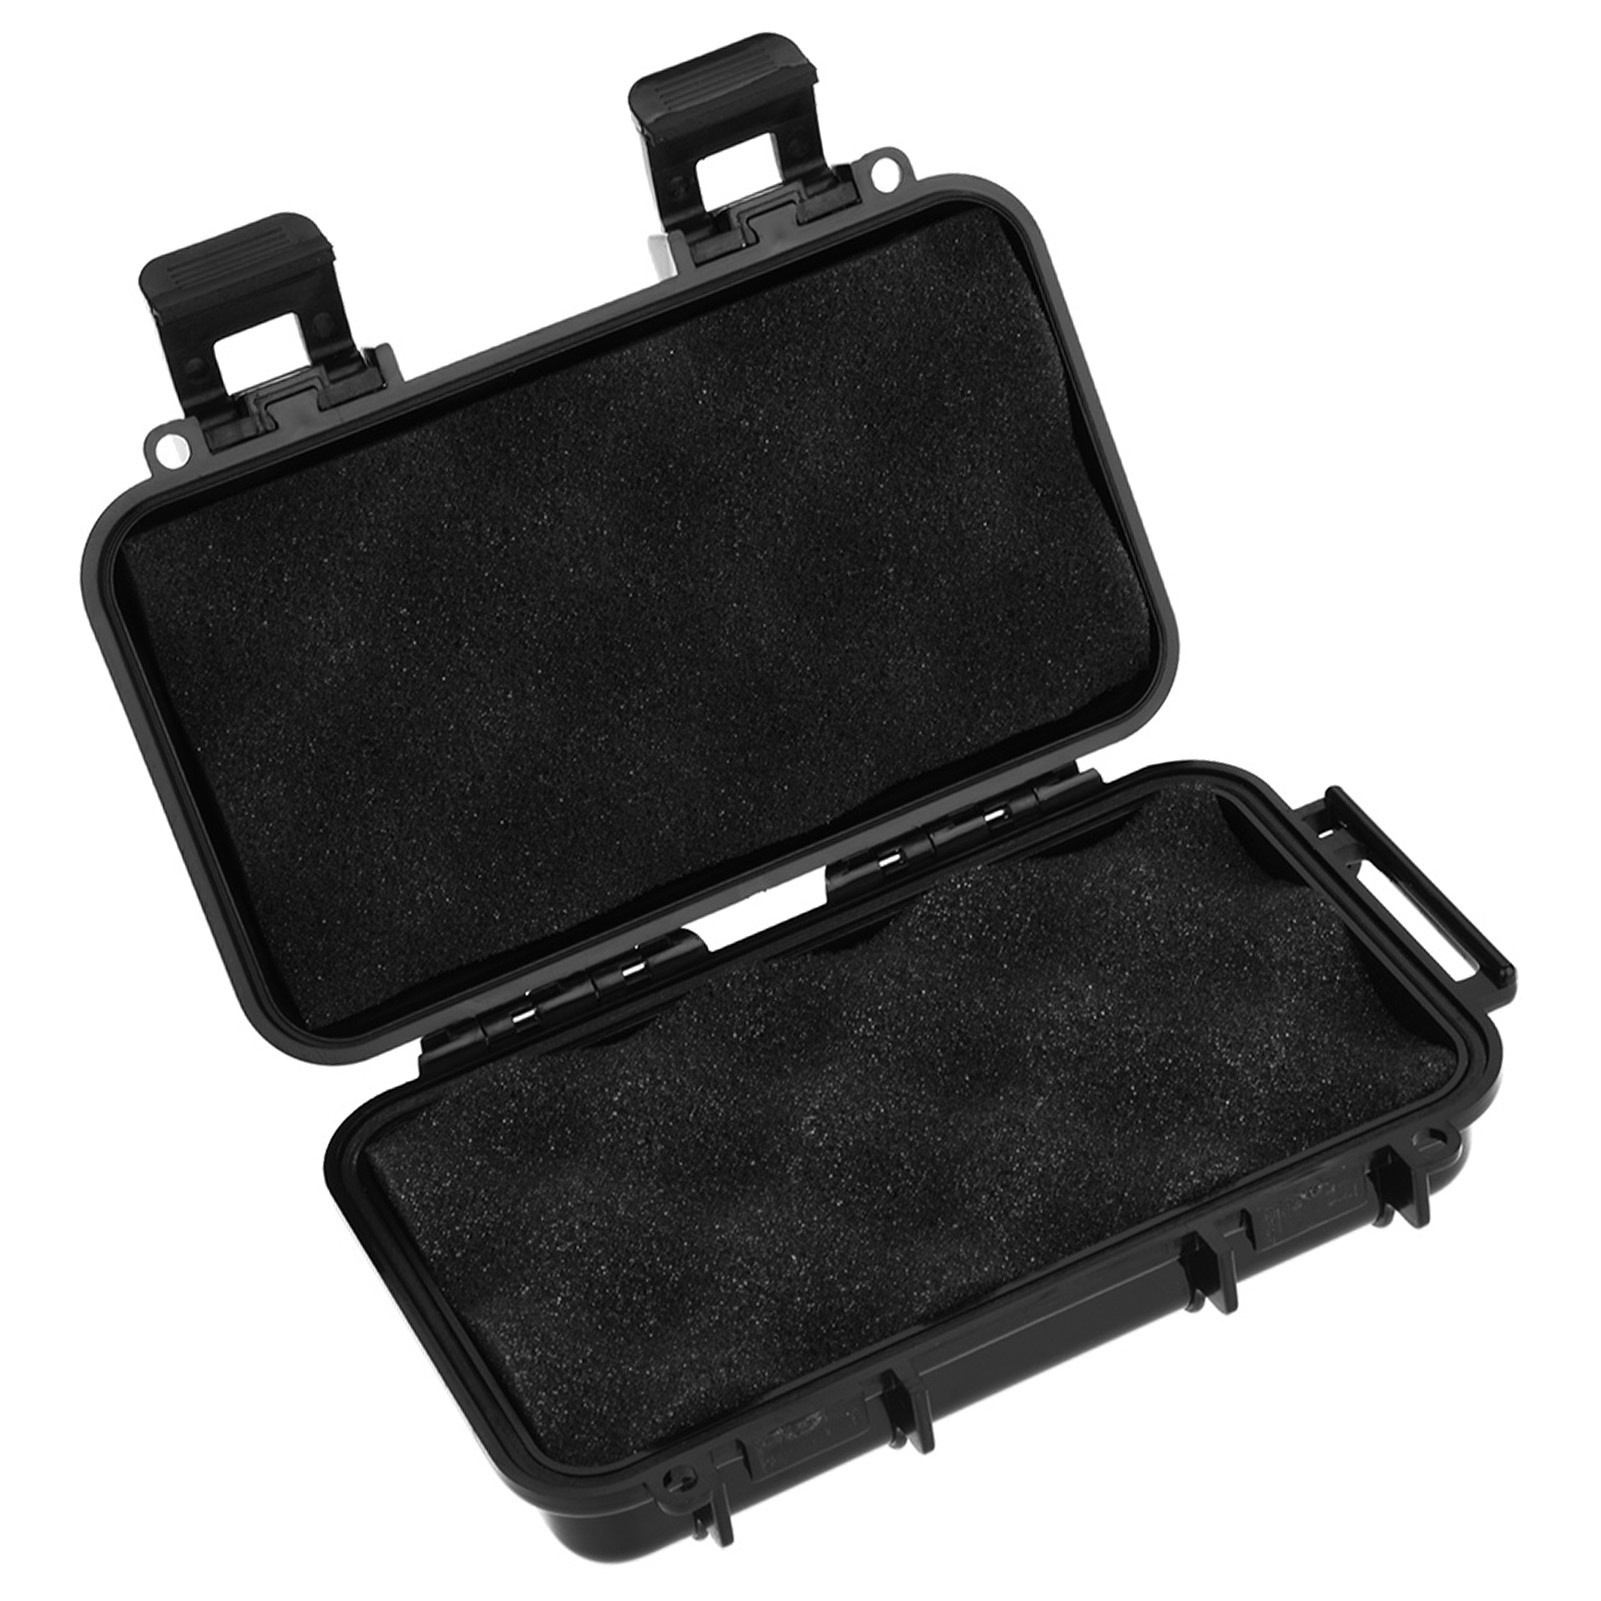 Outdoor-Shockproof-Waterproof-Survival-Sealed-Storage-Case-Container-Carry-Box